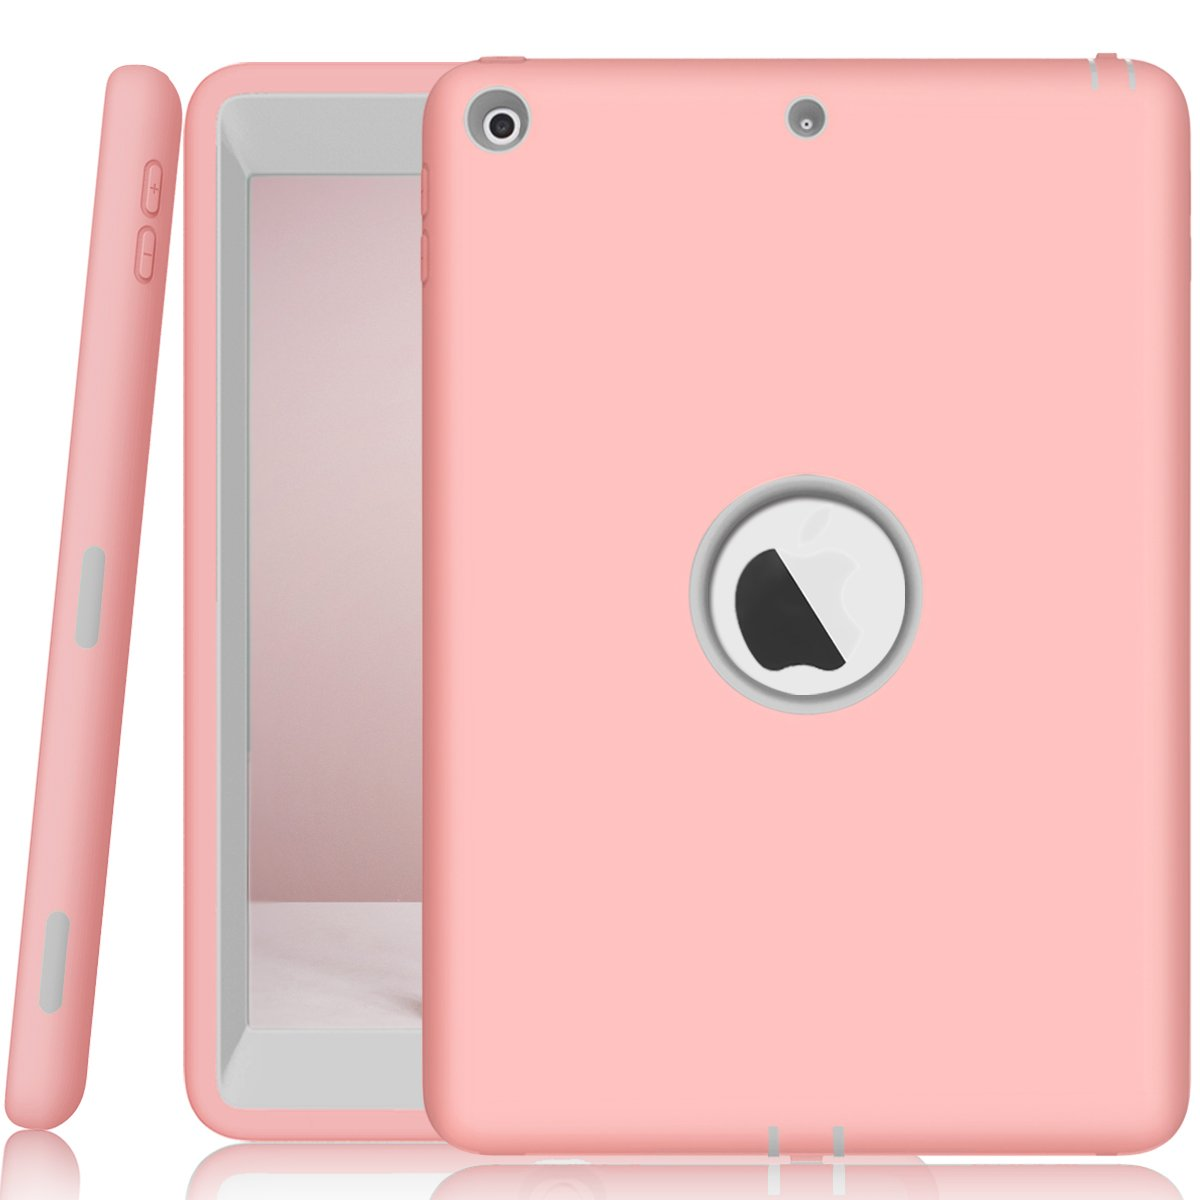 iPad 9.7 2018/2017 Case, SUMOON High-Impact Heavy Duty Shockproof Absorbent Dual Layer Silicone+Hard PC Bumper Protective Case for iPad 5th/6th Generation (Rose Gold)